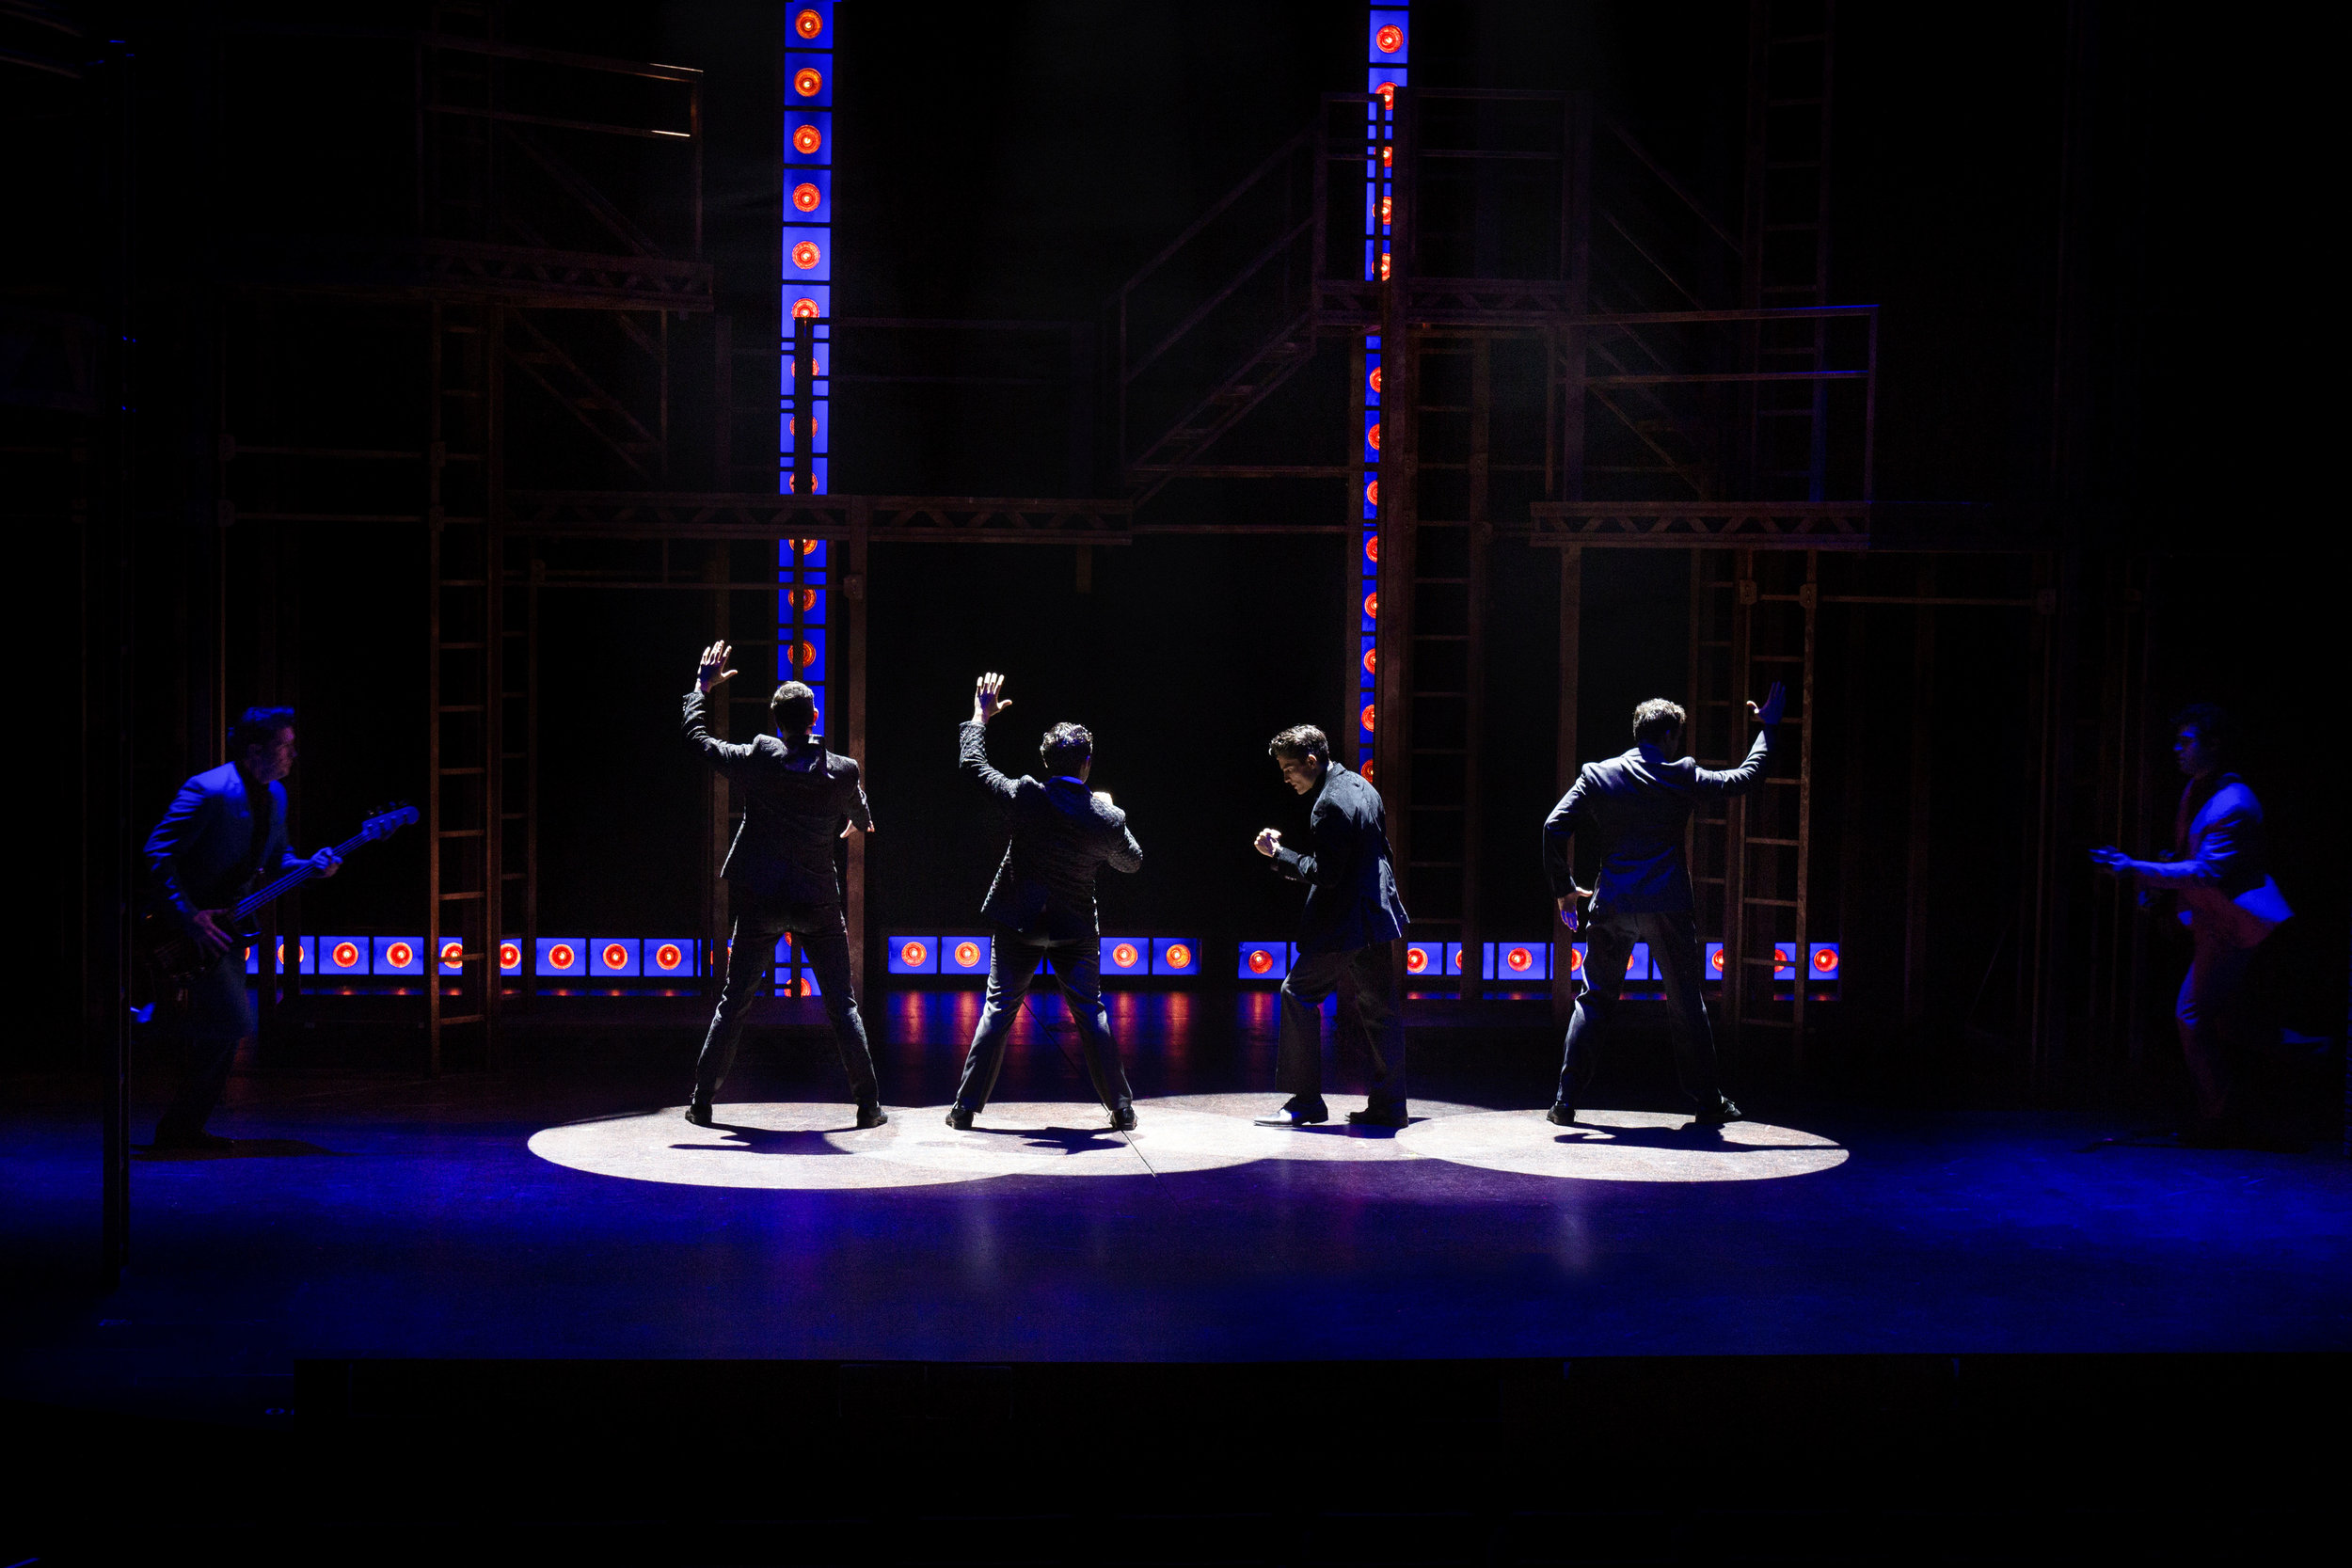 Colin Campbell McAdoo, Andy Christopher, Jonathan Mousset, Matt Magnusson, Matthew Amira, and Will Boyajian in Jersey Boys at the Ogunquit Playhouse. Photo by Paul Charest.